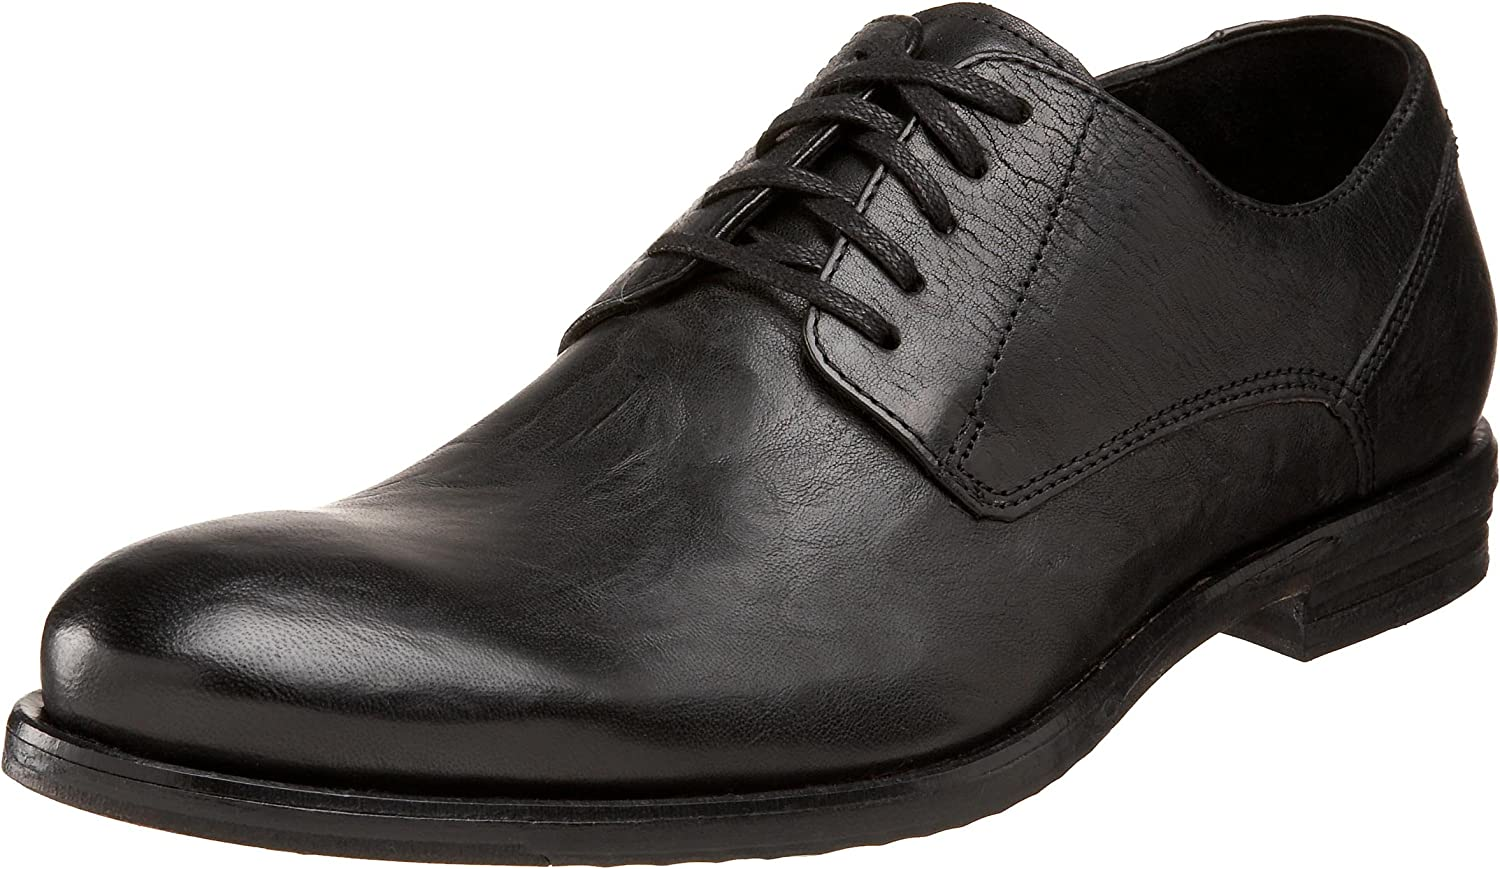 New product! New type Kenneth Cole New Japan Maker York Men's Oxford Service Bottle